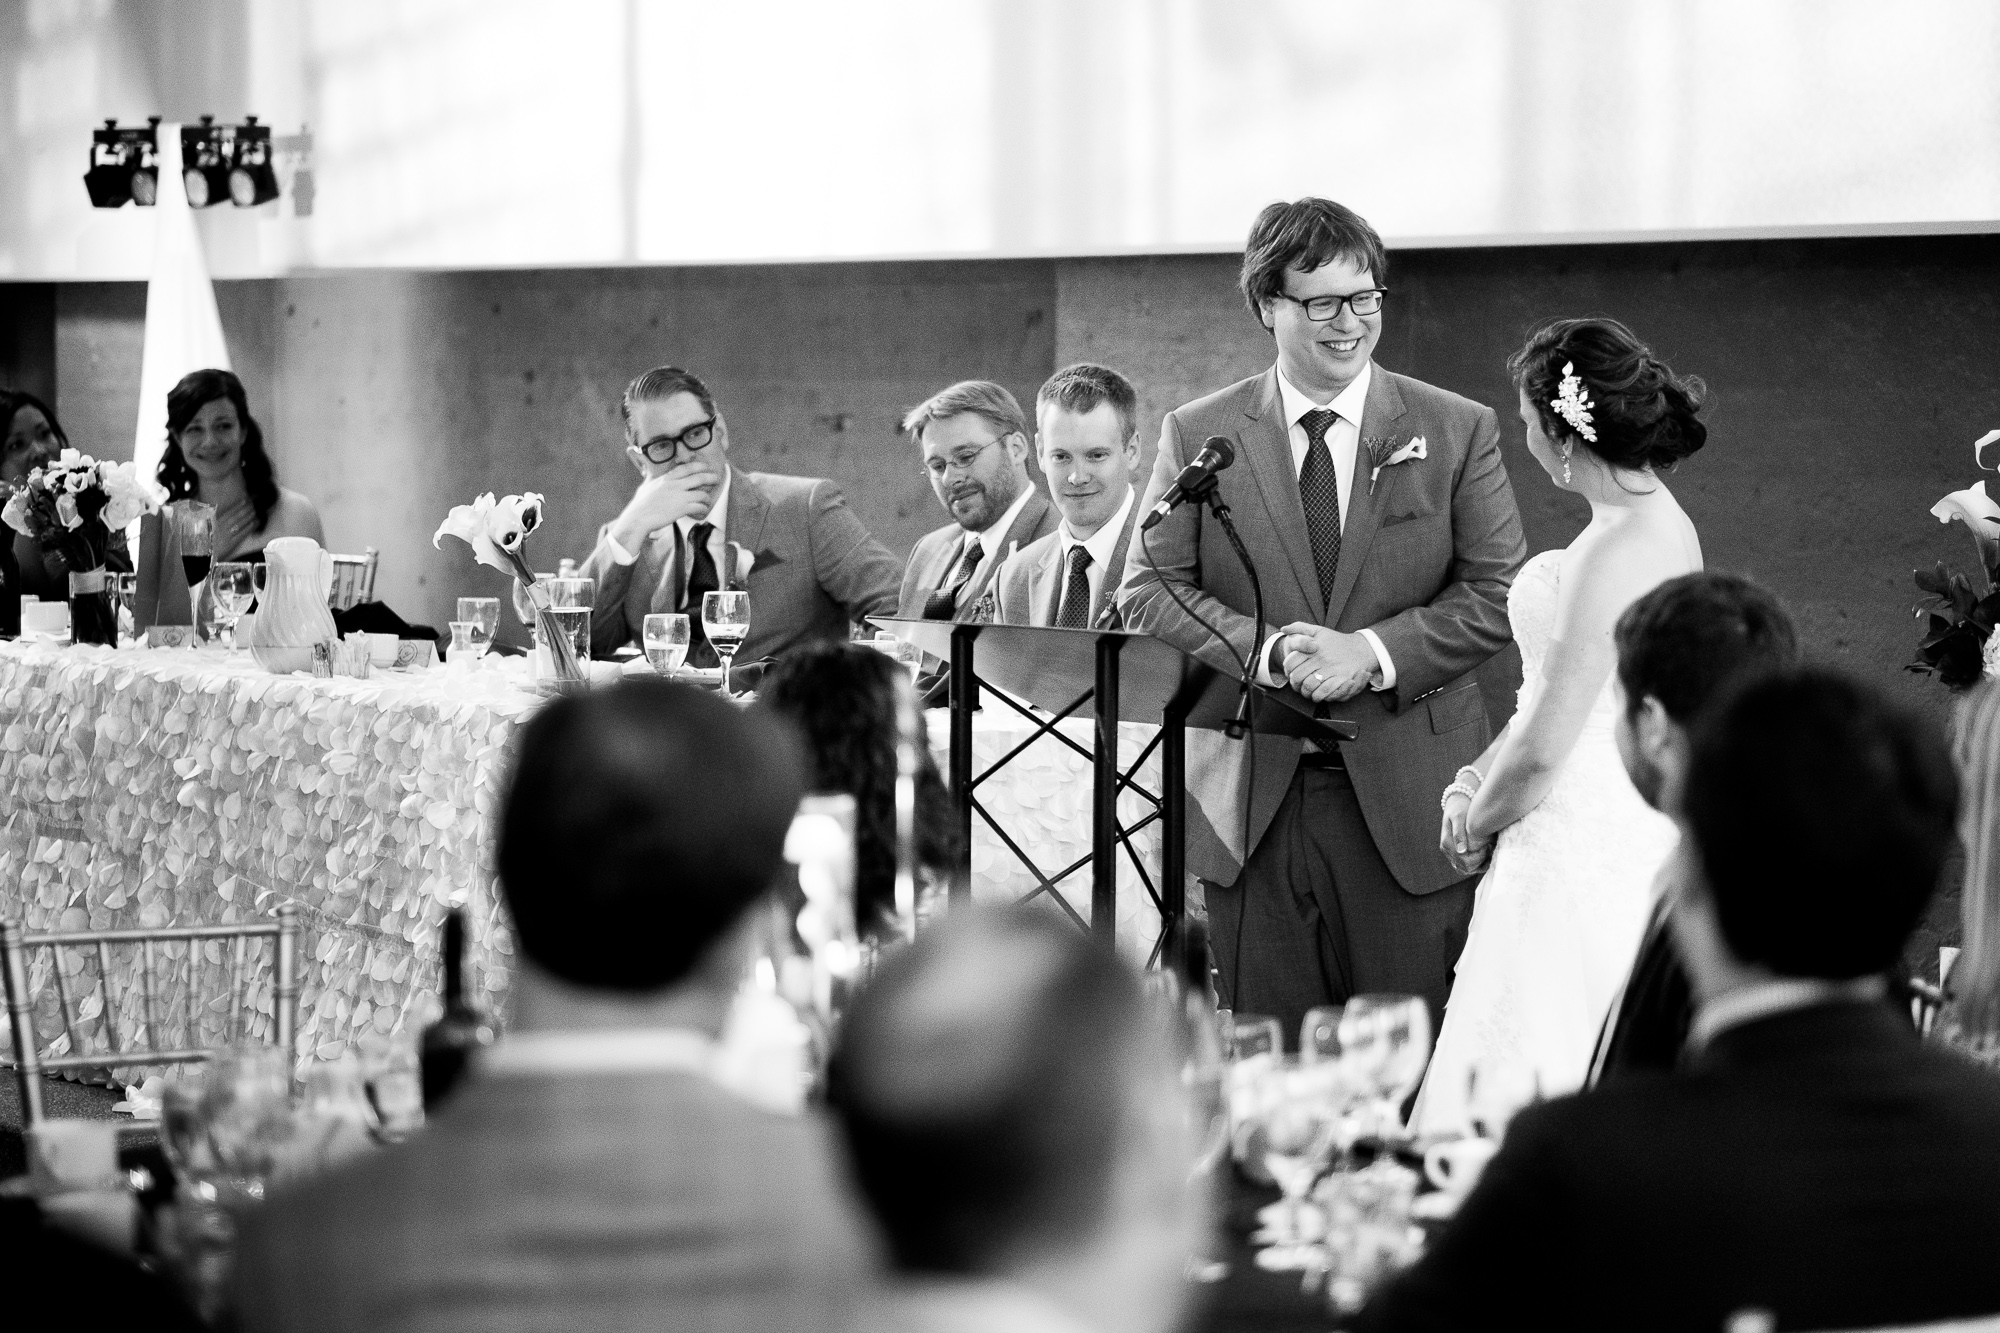 During the wedding reception, Ian toasts his new bride in his speech.